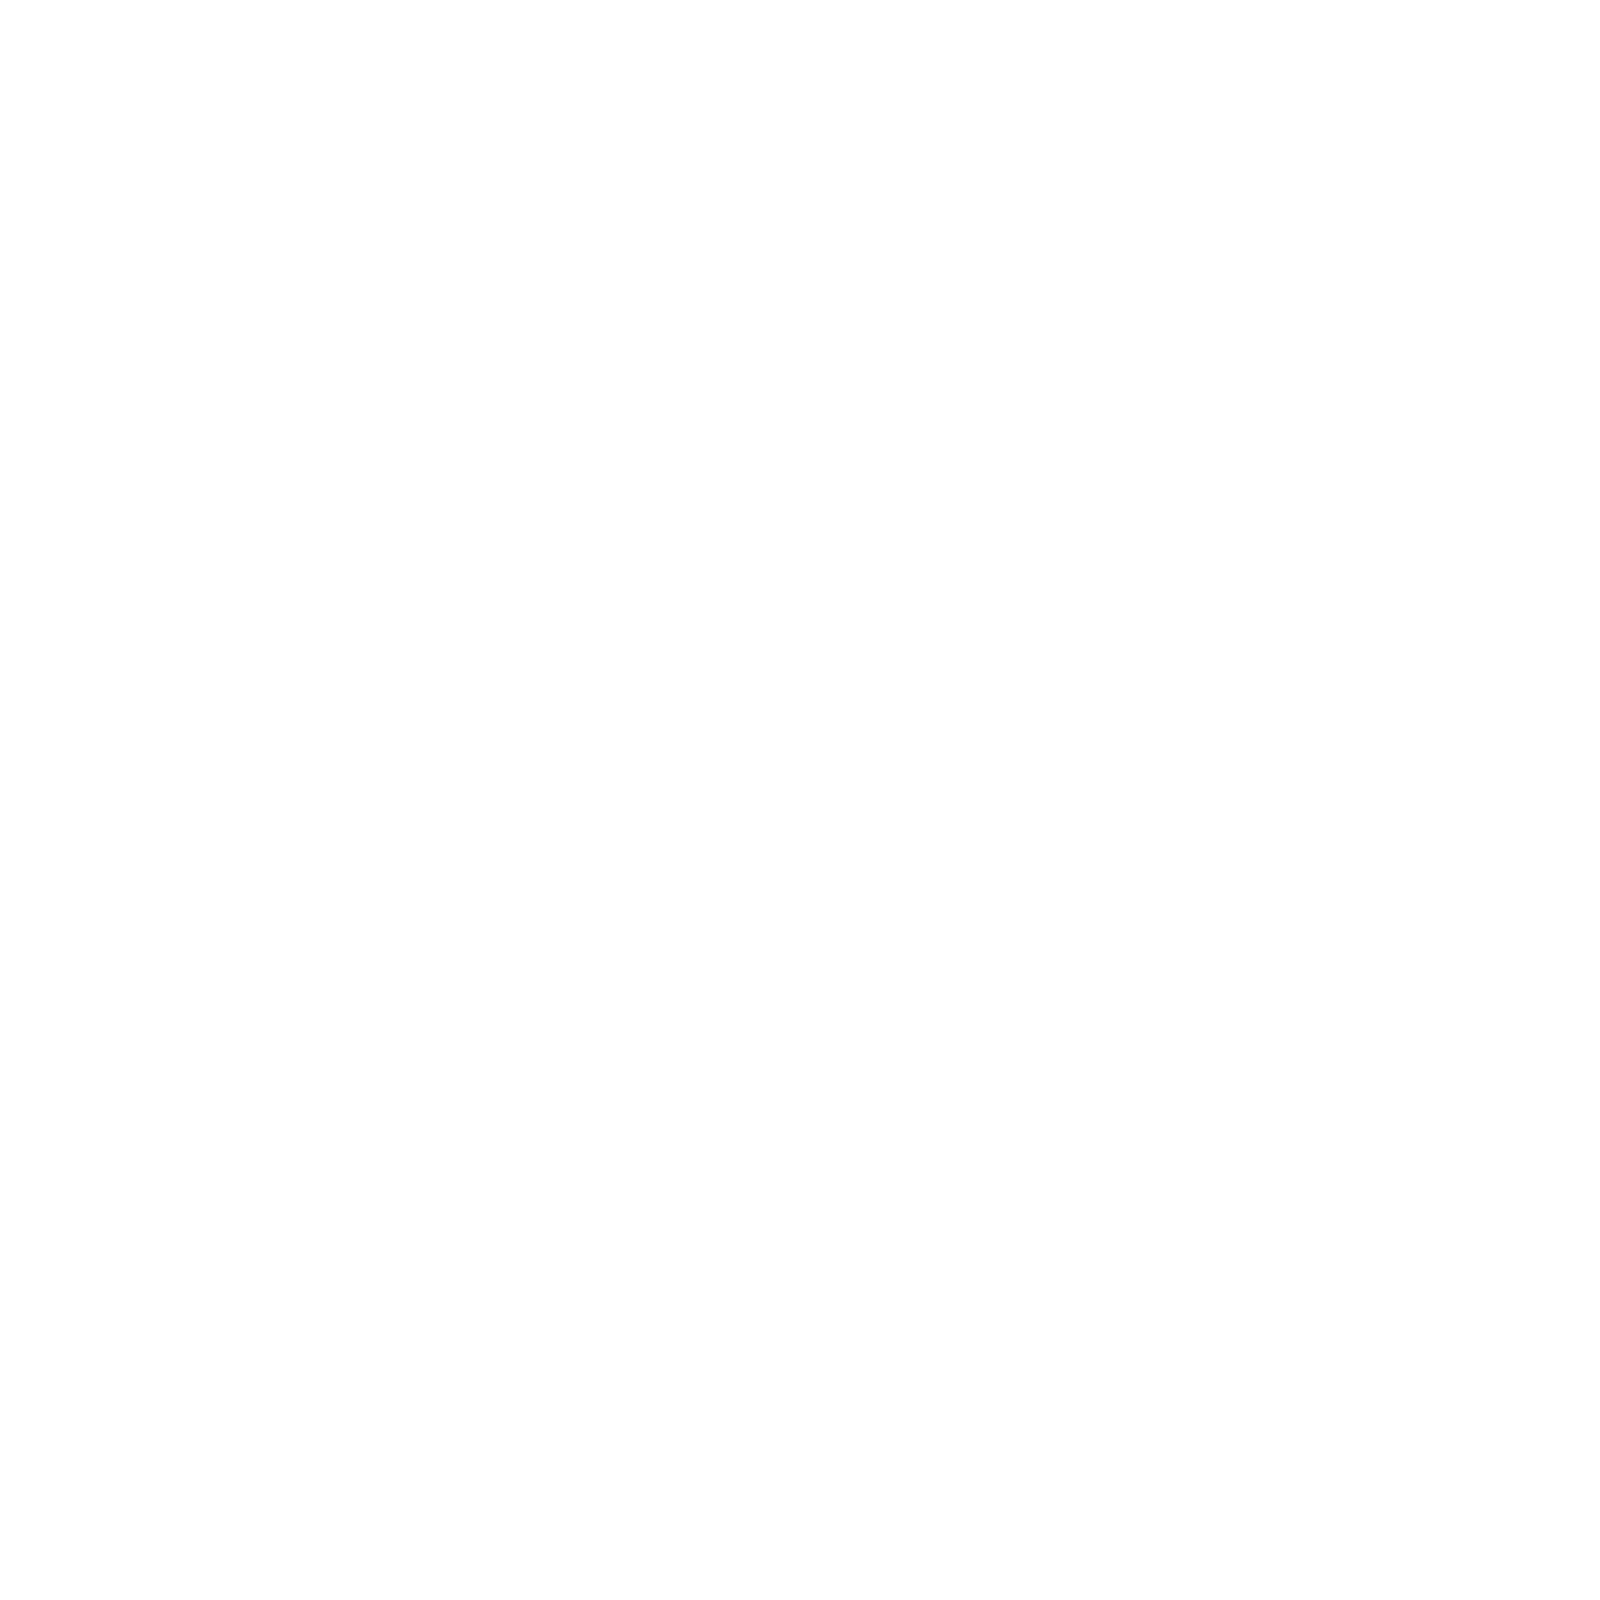 Thought bubbles designs i love house music for My house house music